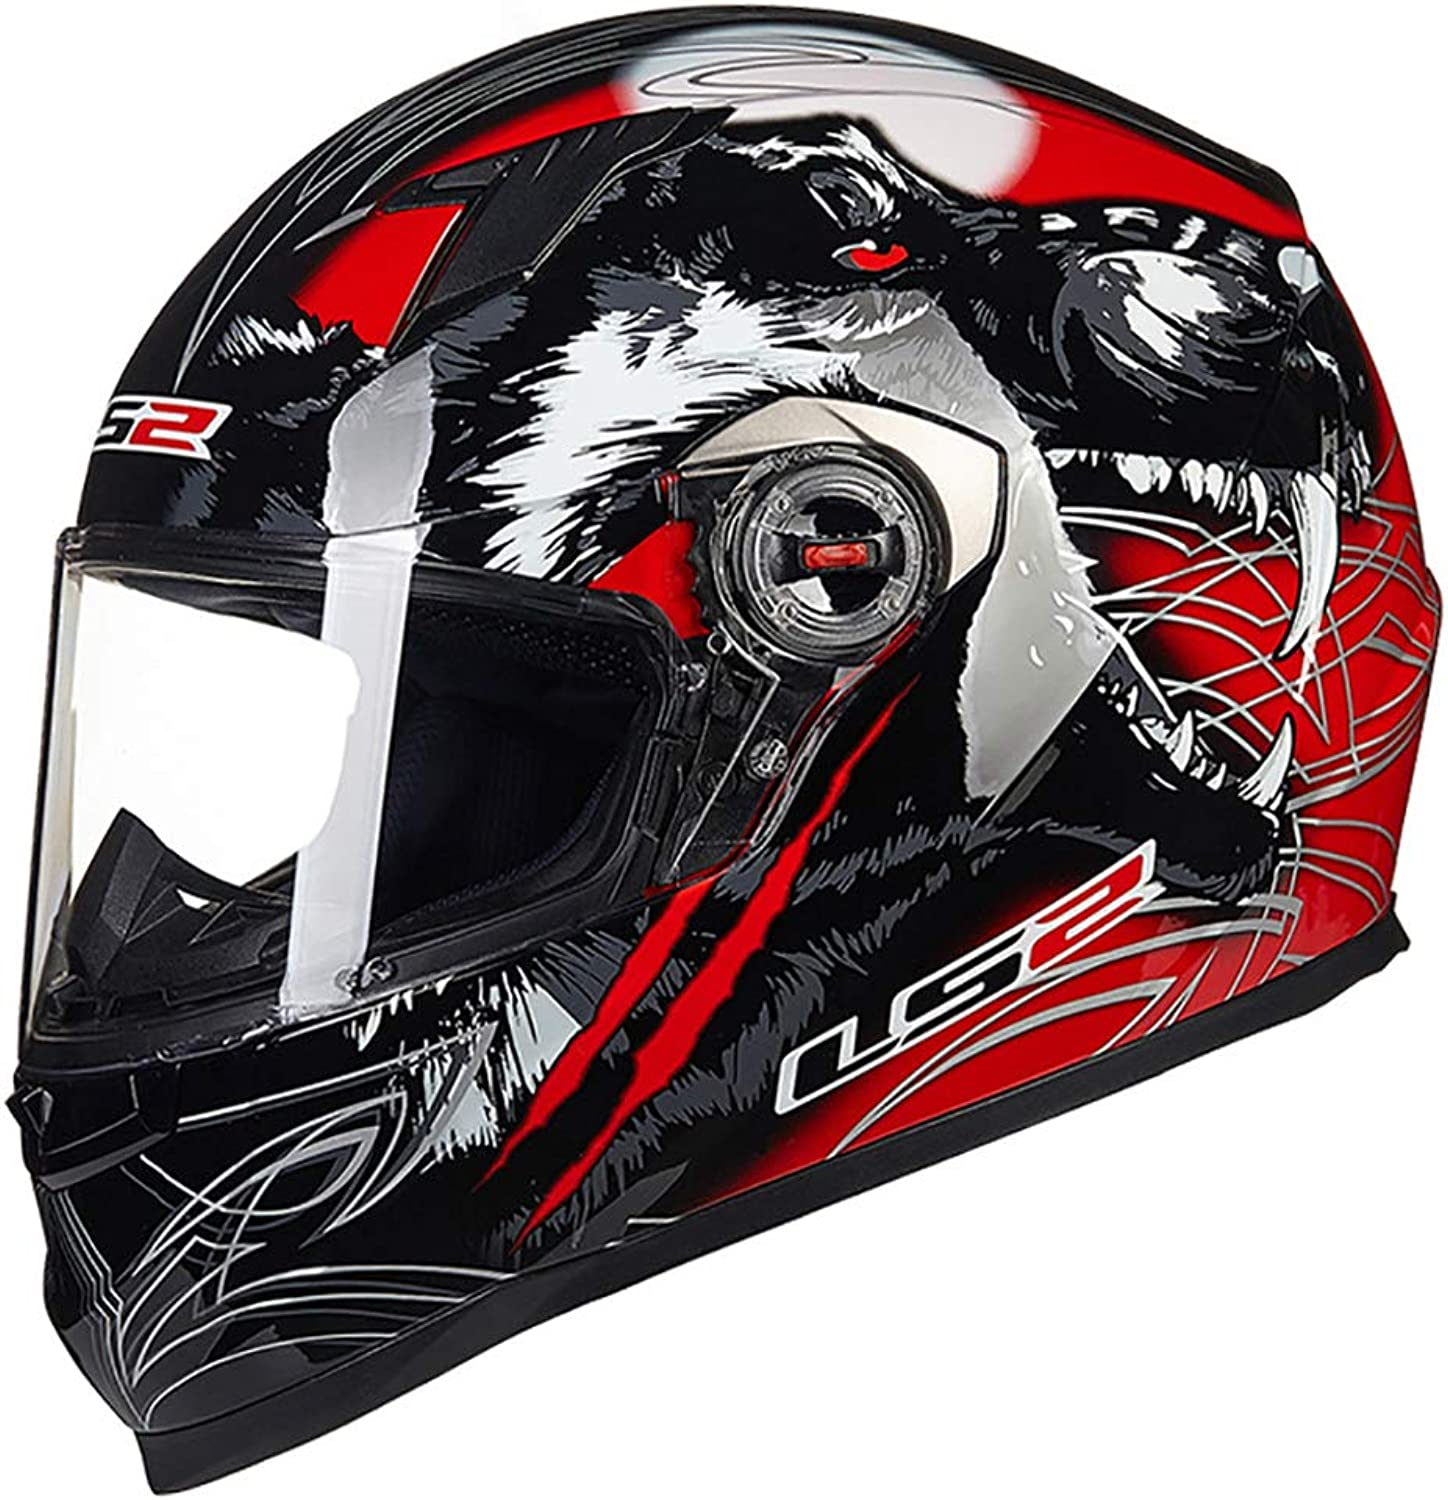 Helmet Male Motorcycle Helmet Full Helmet Full Cover Four Seasons General Motorcycle Helmet Heavy Locomotive Outdoor Riding Helmet Street Bike Racing Collision Helmet,1004,L